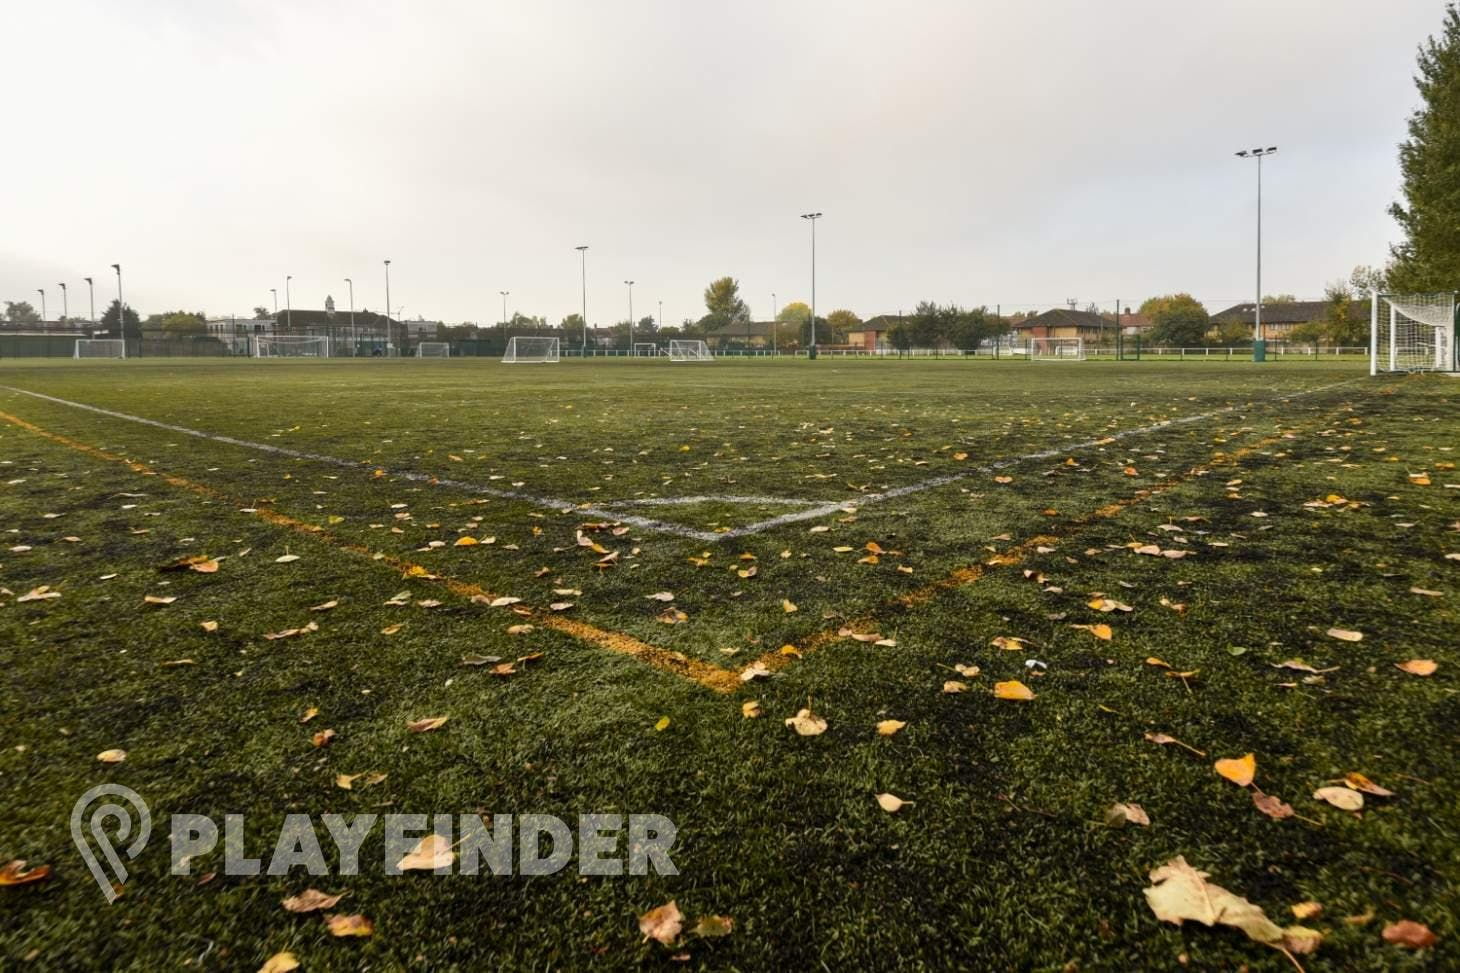 Match Day Centres 11 a side | 3G Astroturf football pitch